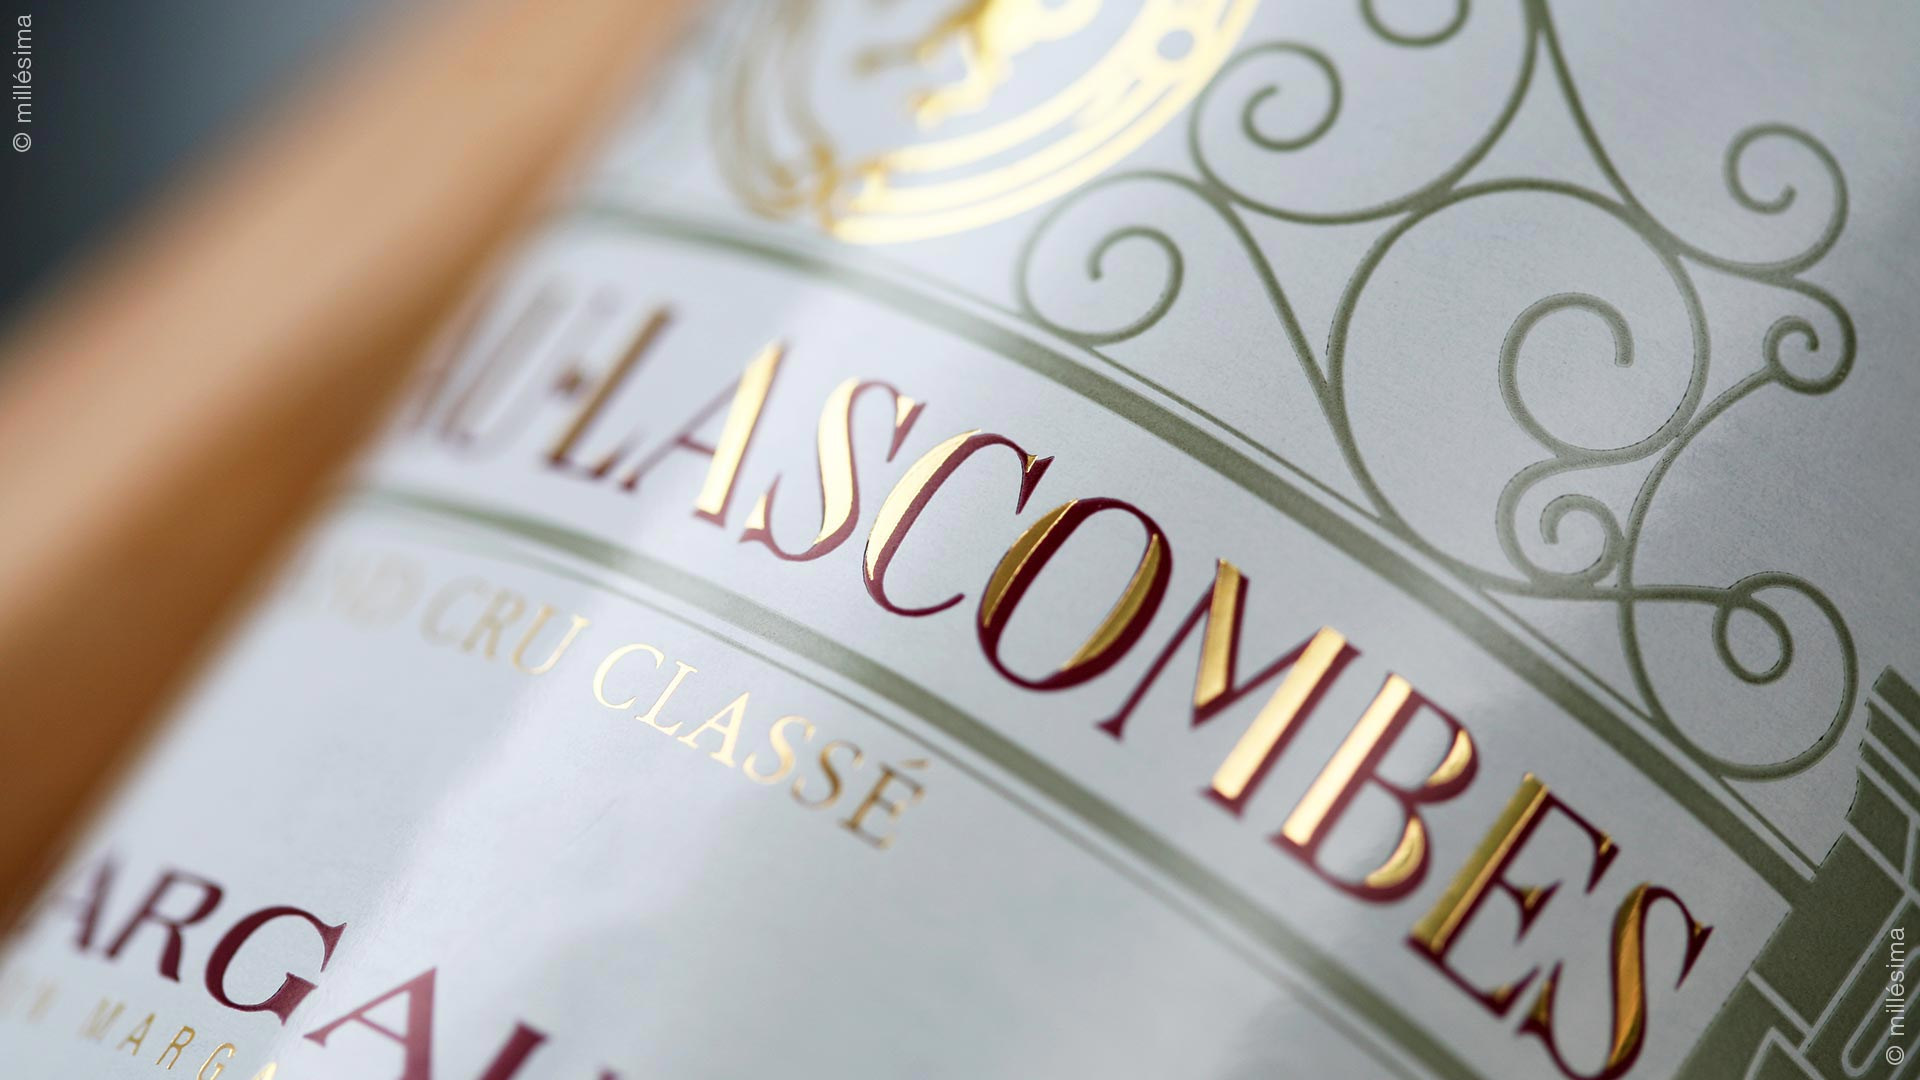 Chateau Lascombes 2014 - 1